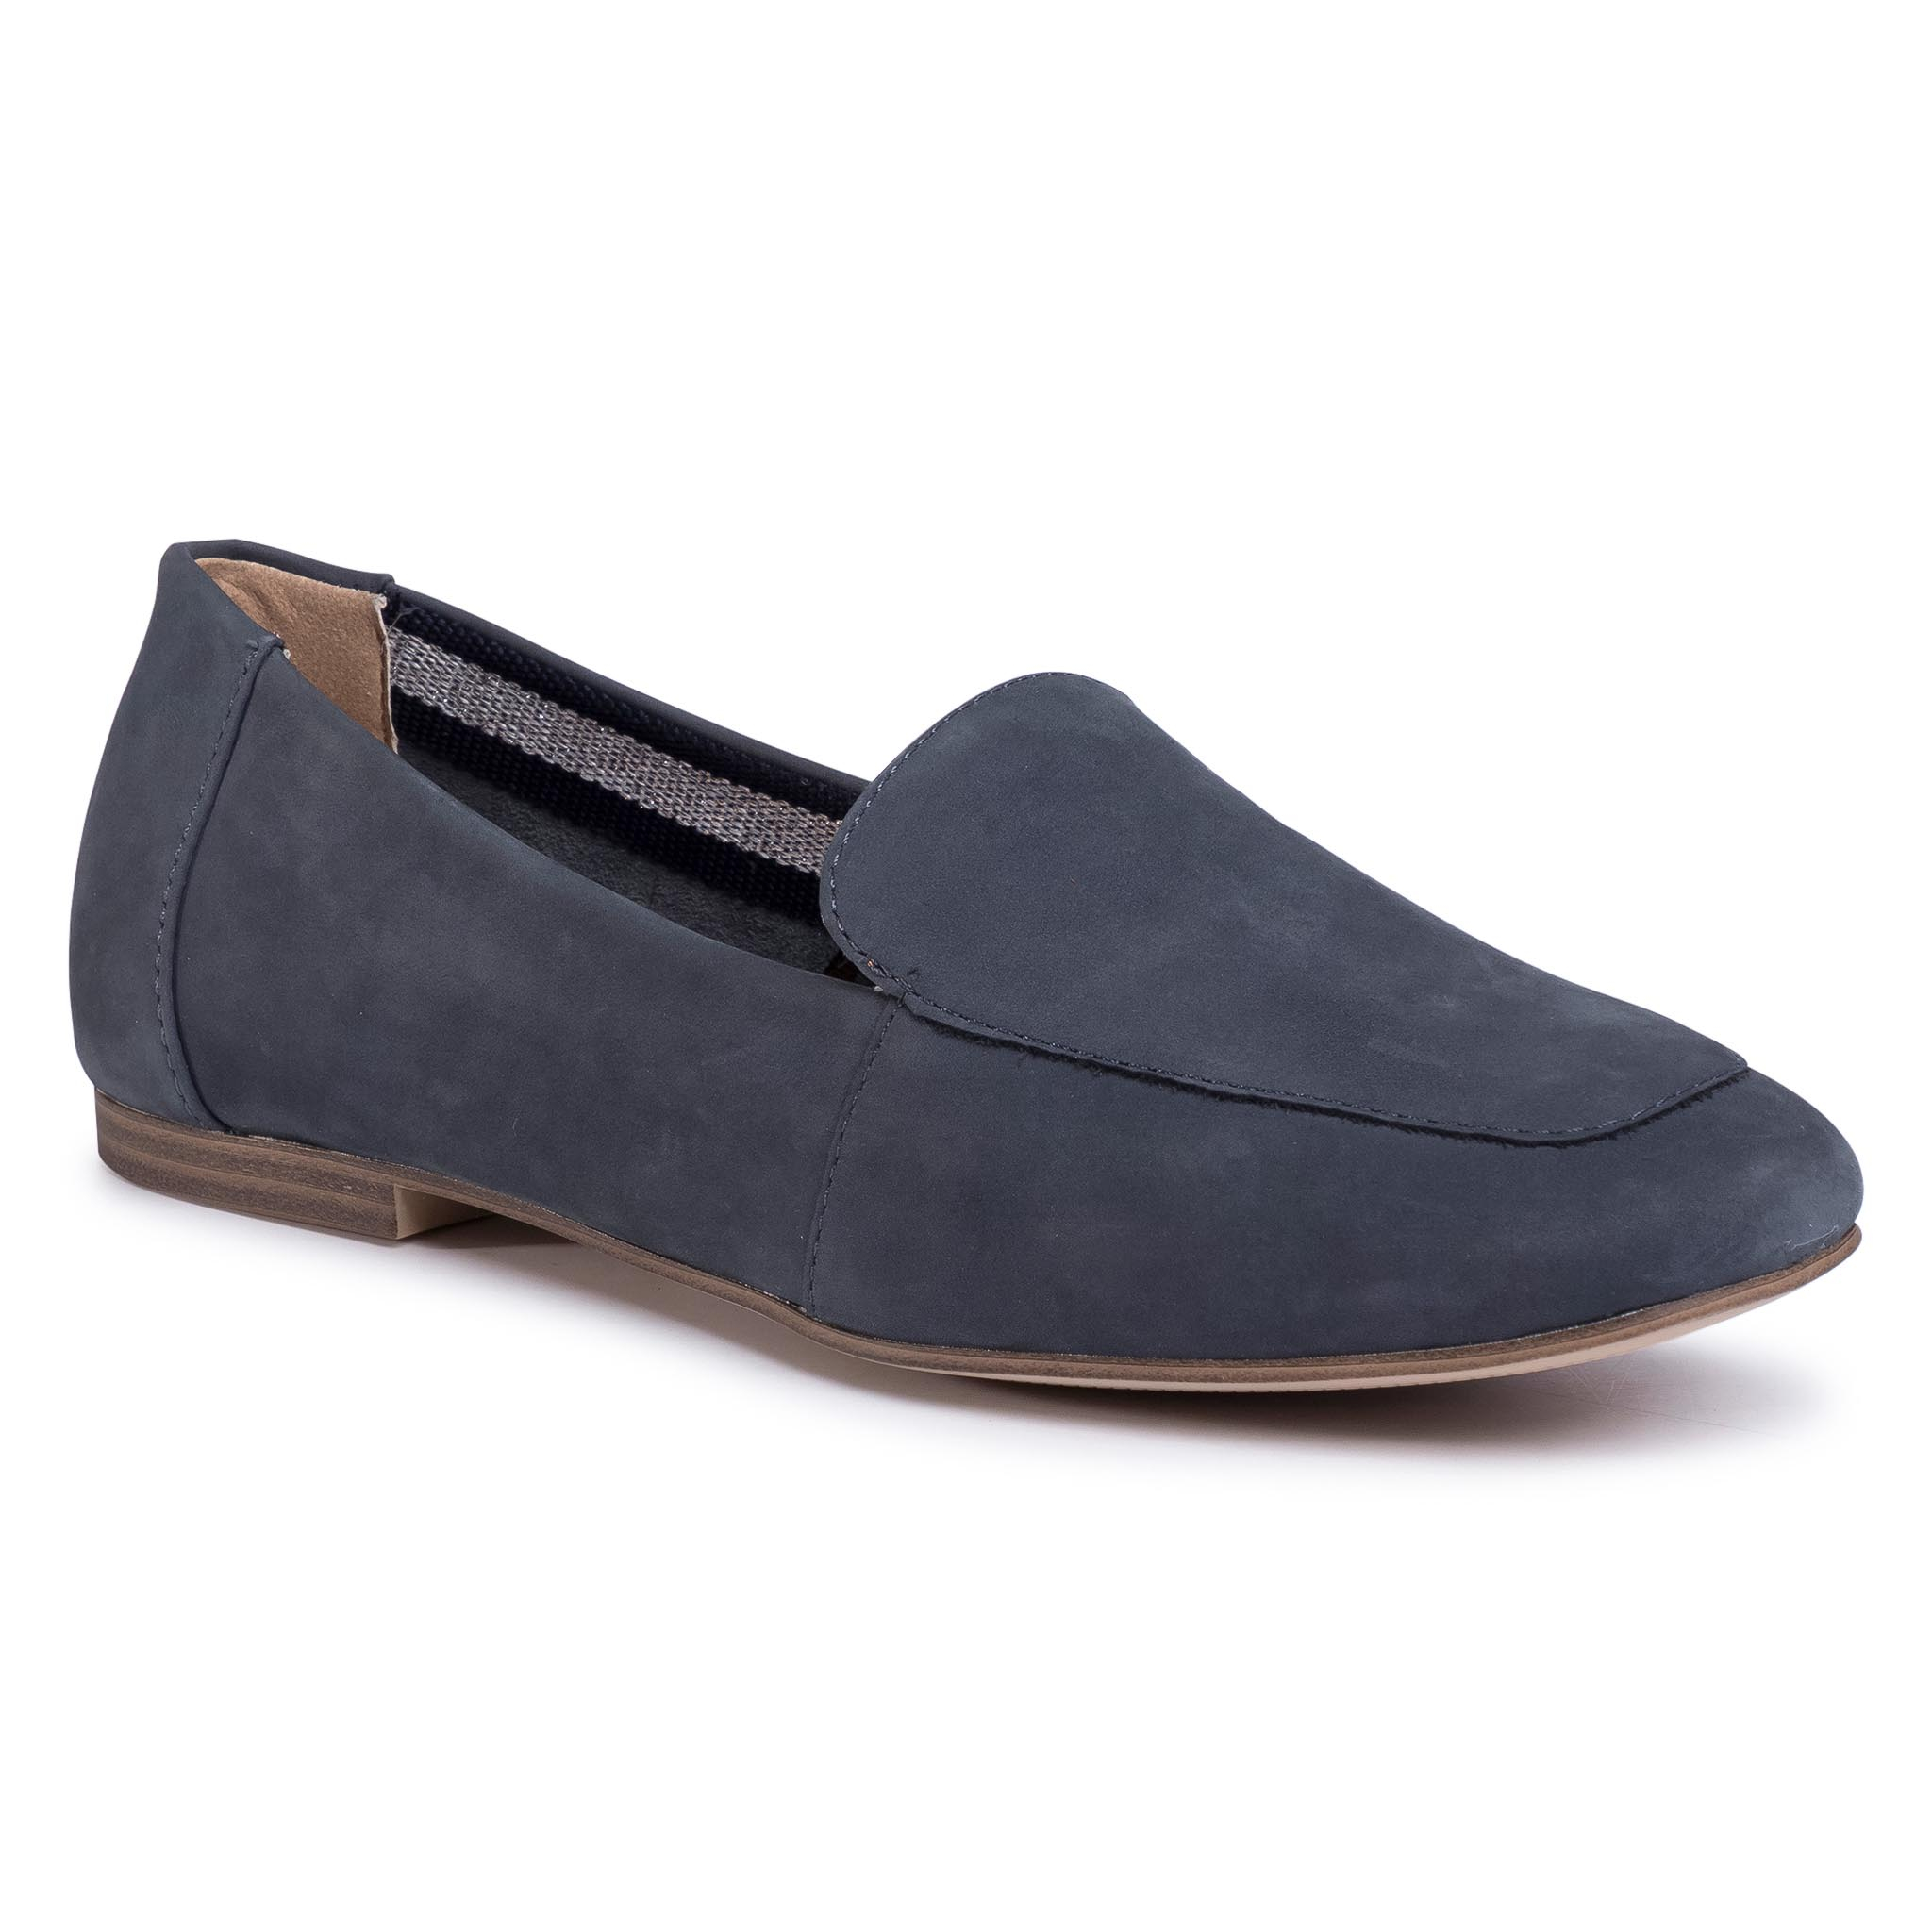 Lordsai S.OLIVER - 5-24208-24 Navy 805